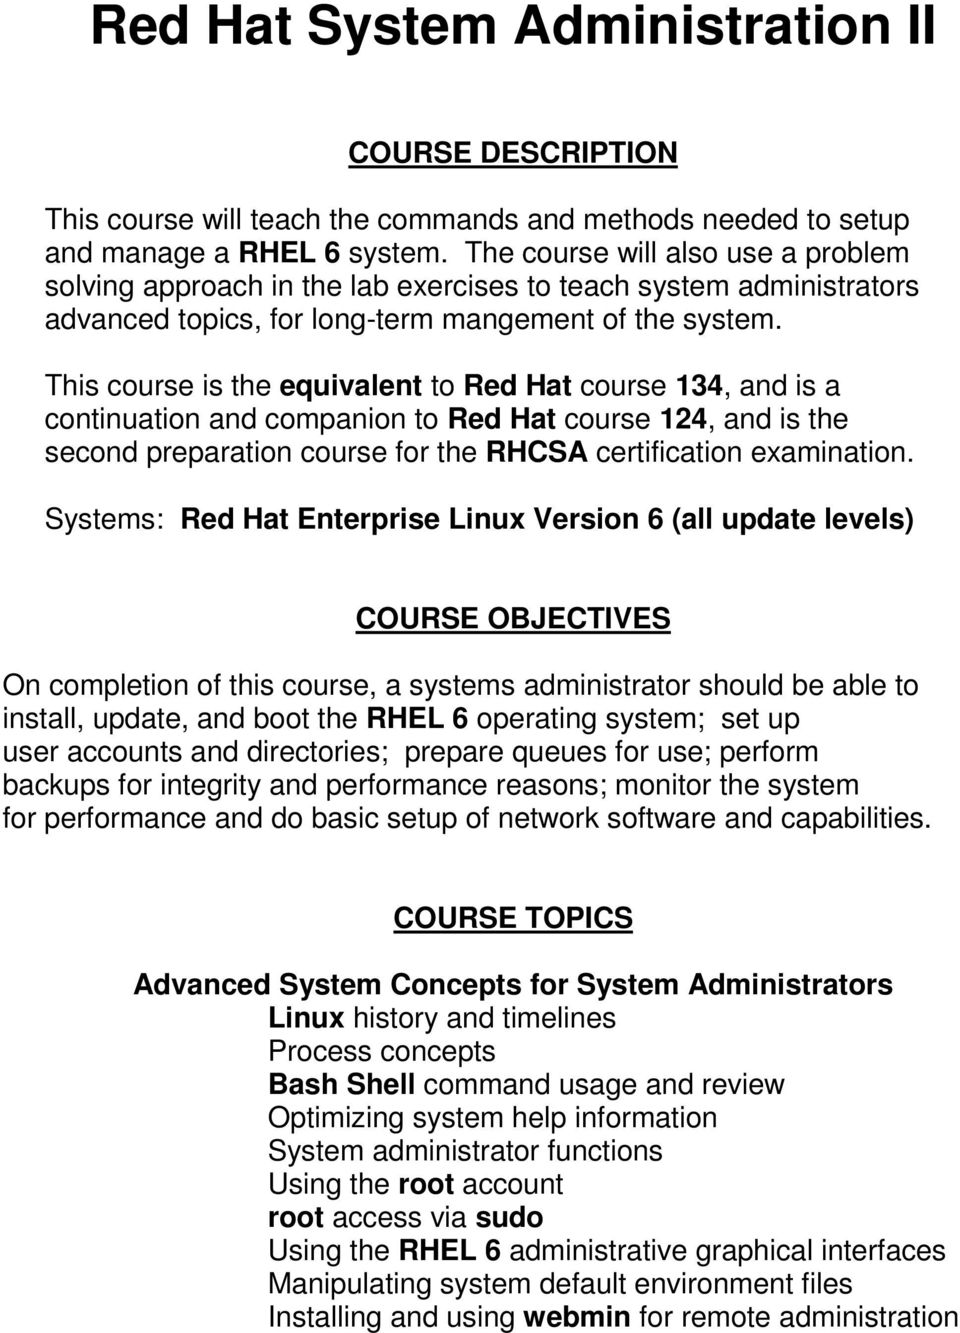 This course is the equivalent to Red Hat course 134, and is a continuation and companion to Red Hat course 124, and is the second preparation course for the RHCSA certification examination.